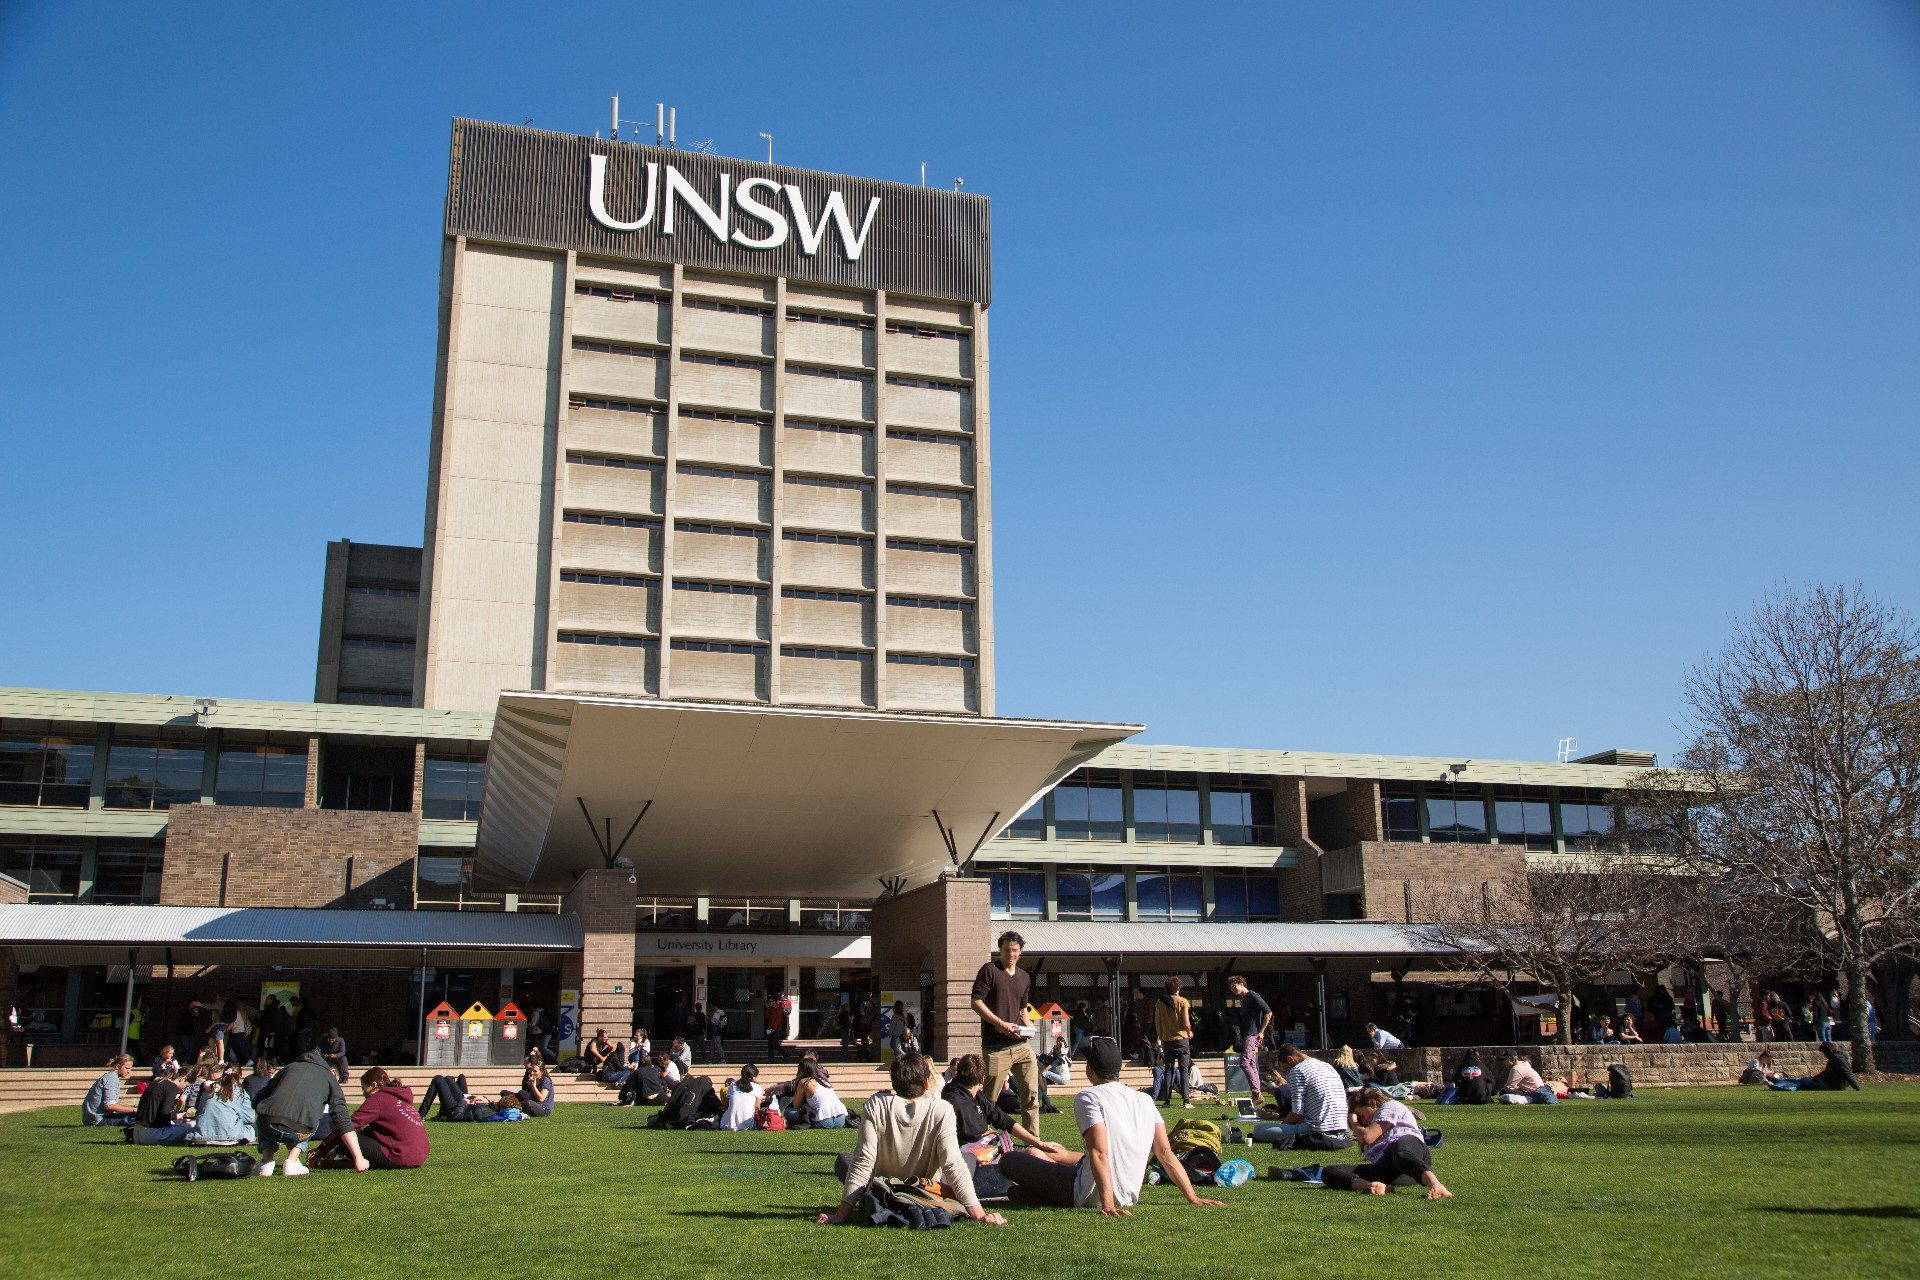 Photograph of the exterior of the library located on the UNSW Kensington campus this photo shows a full front view of the whole building